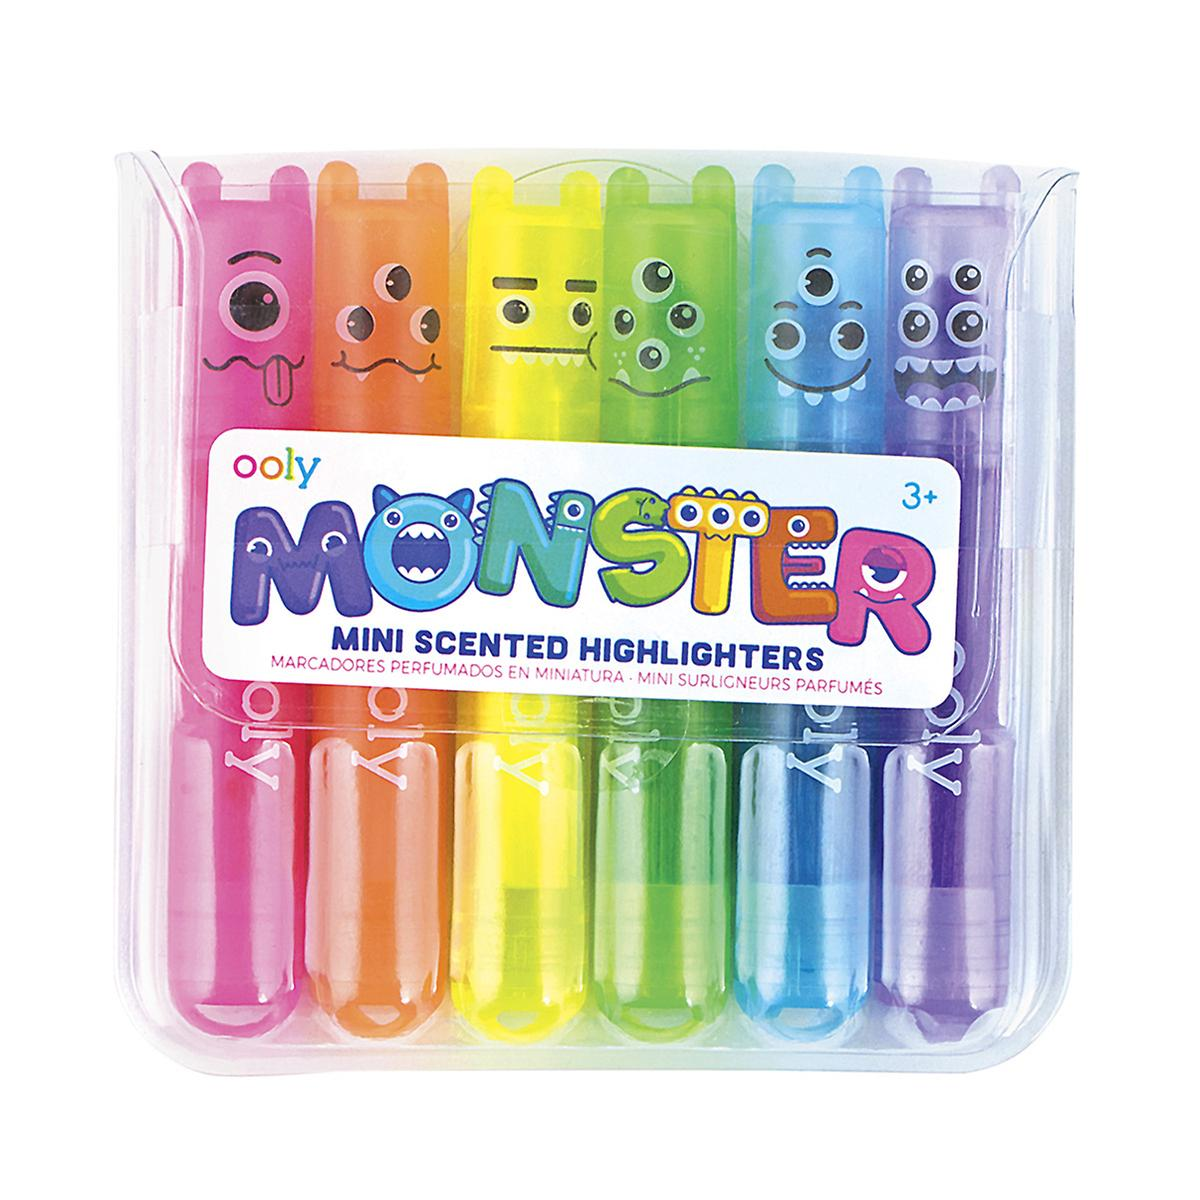 Ooly Monster Mini Scented Highlighters